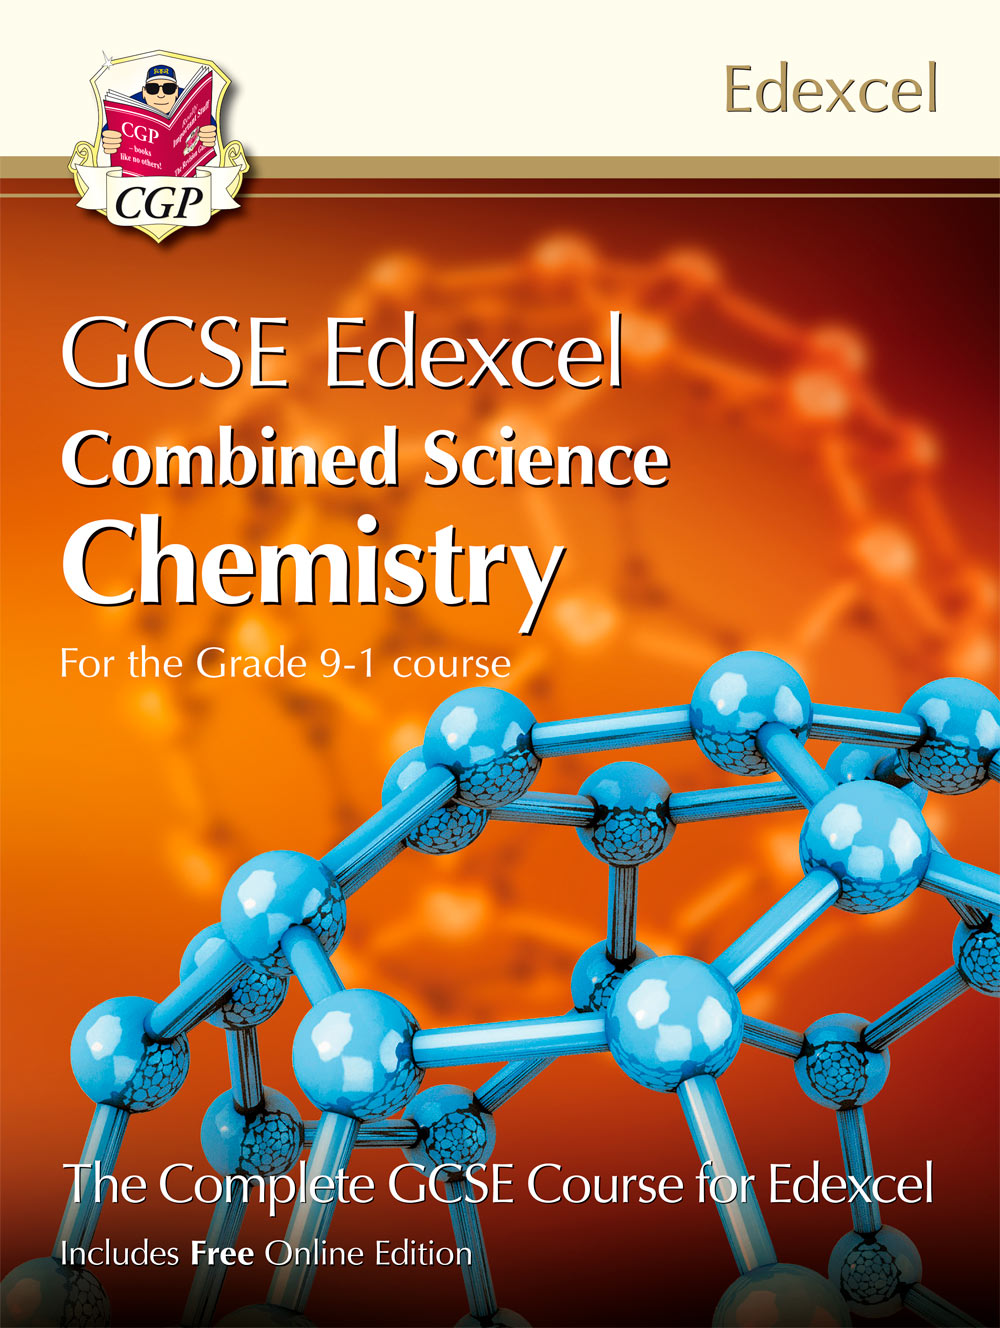 SCCET41 - Grade 9-1 GCSE Combined Science for Edexcel Chemistry Student Book with Online Edition